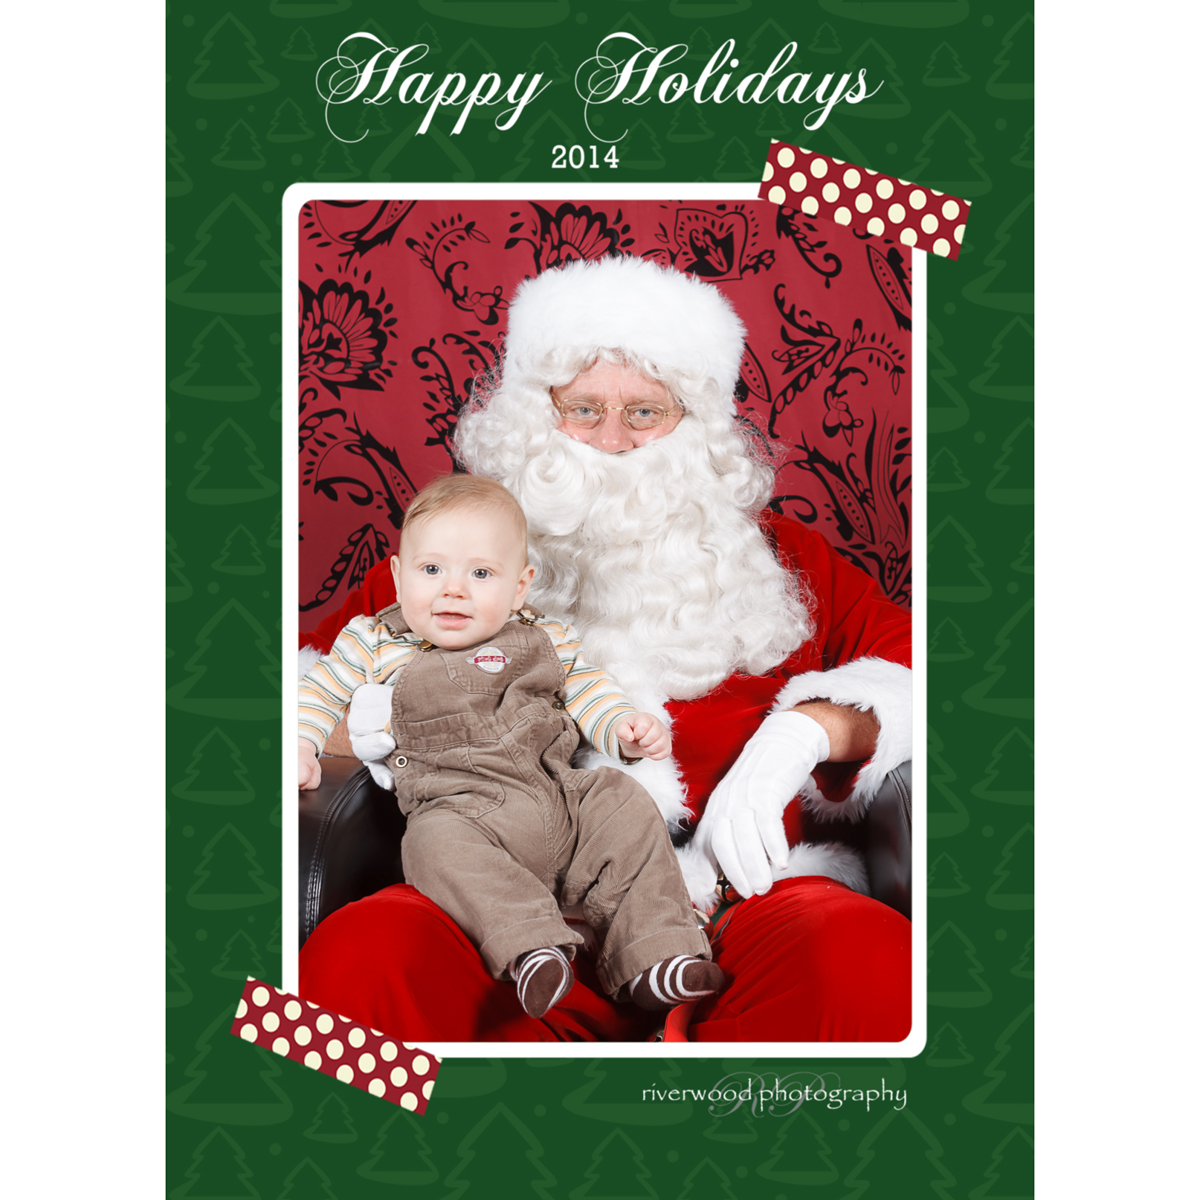 Free christmas photo booth templates Best of Phoenix 2017 - Phoenix New Times